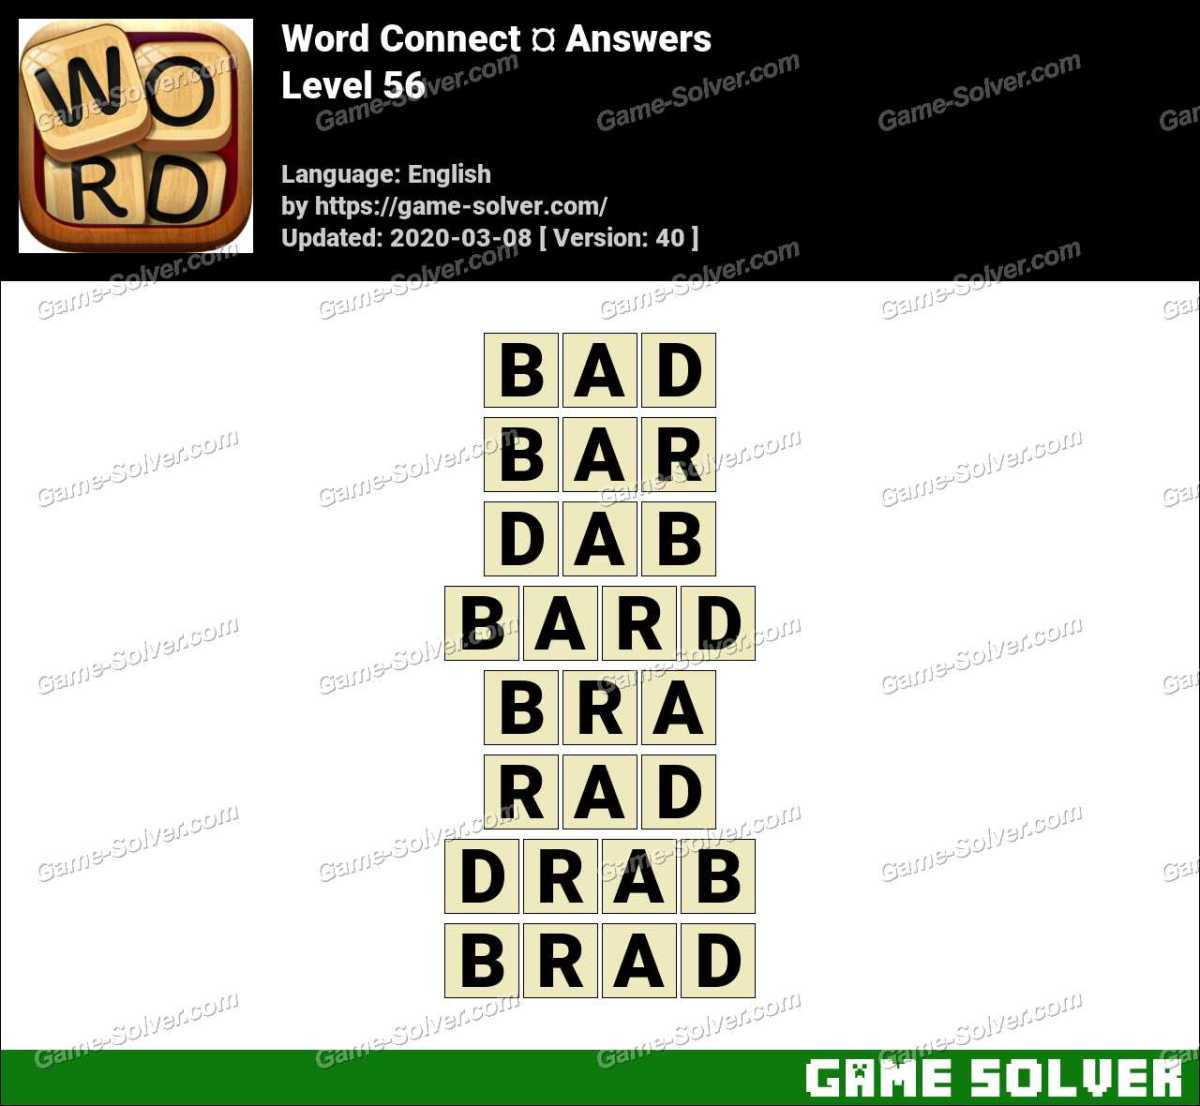 Word Connect Level 56 Answers